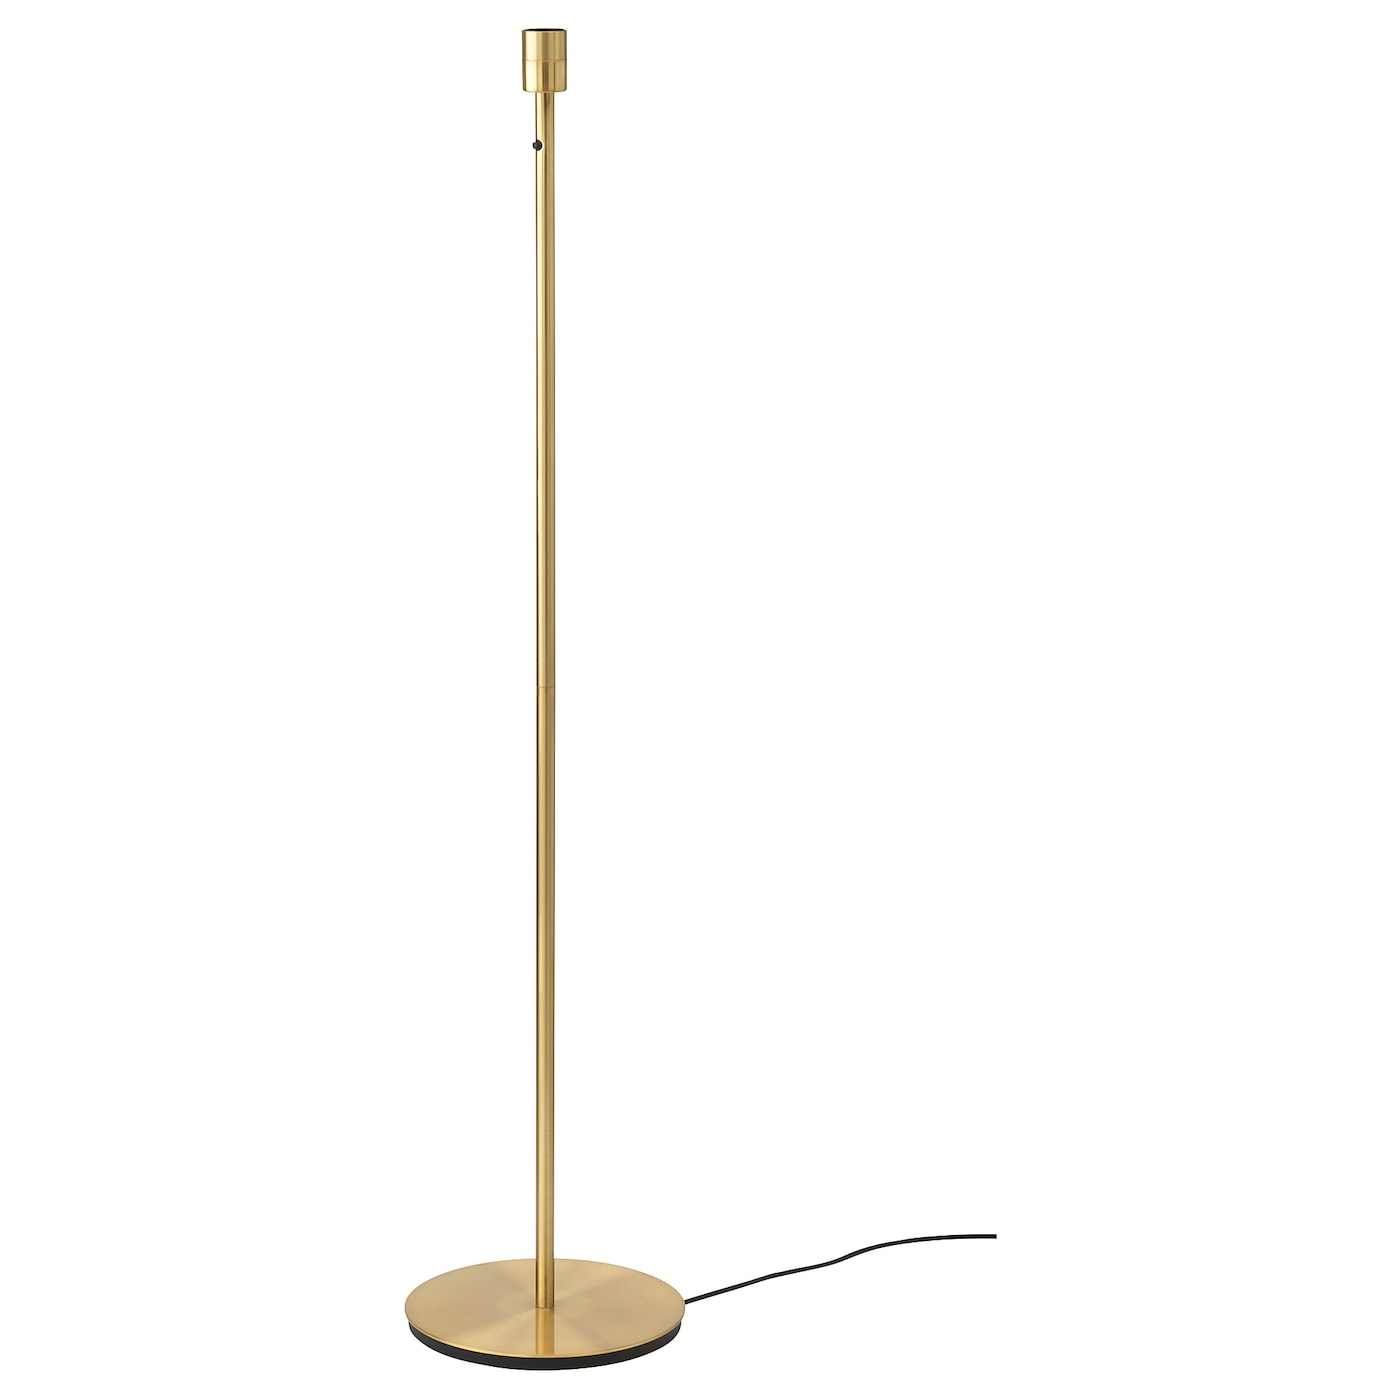 IKEA SKAFTET floor lamp base